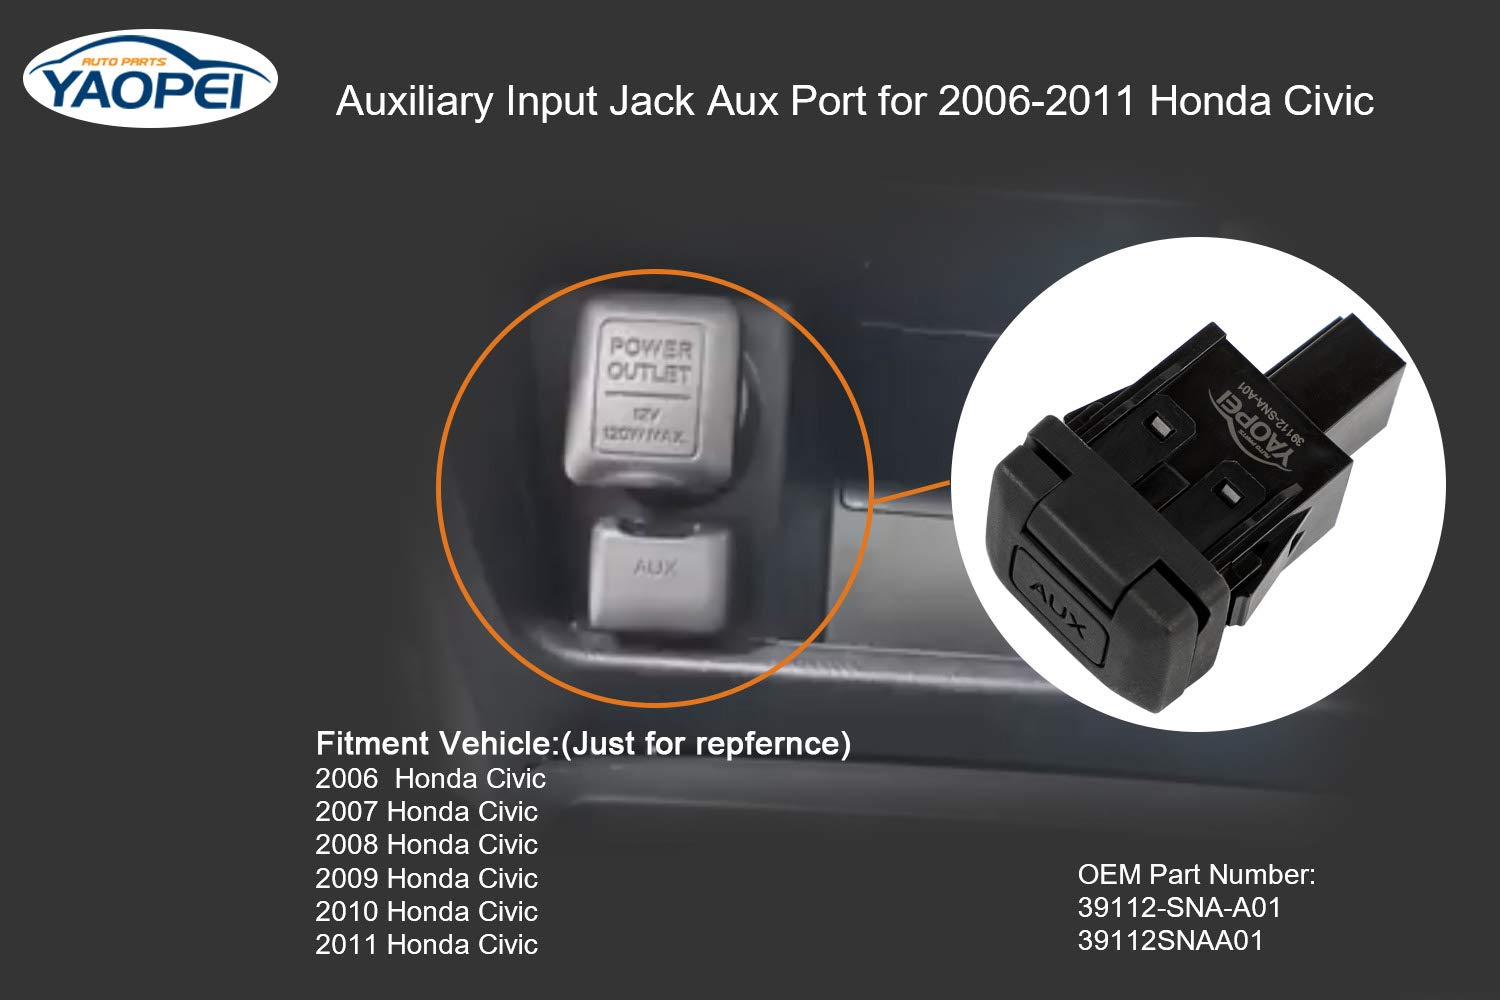 39112-SNA-A01 Auxiliary Input Jack Aux Port for 2006 2007 2008 2009 2010 2011 Honda Civic Replace OE# 39112SNAA01